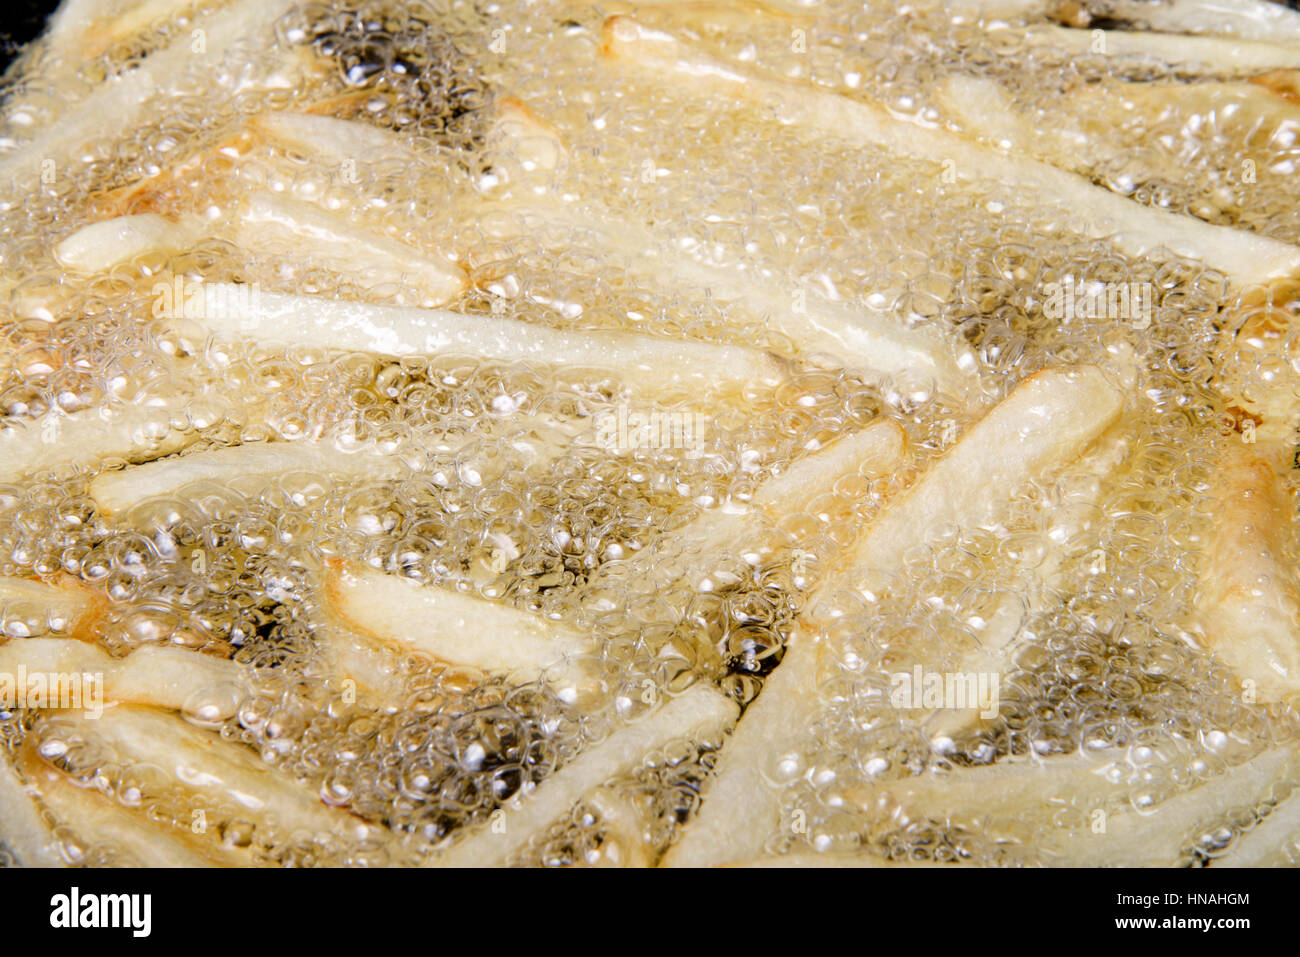 Medium sized Russet potatoes peeled, sliced and frying in hot oil creating home made french fries. An inexpensive Stock Photo